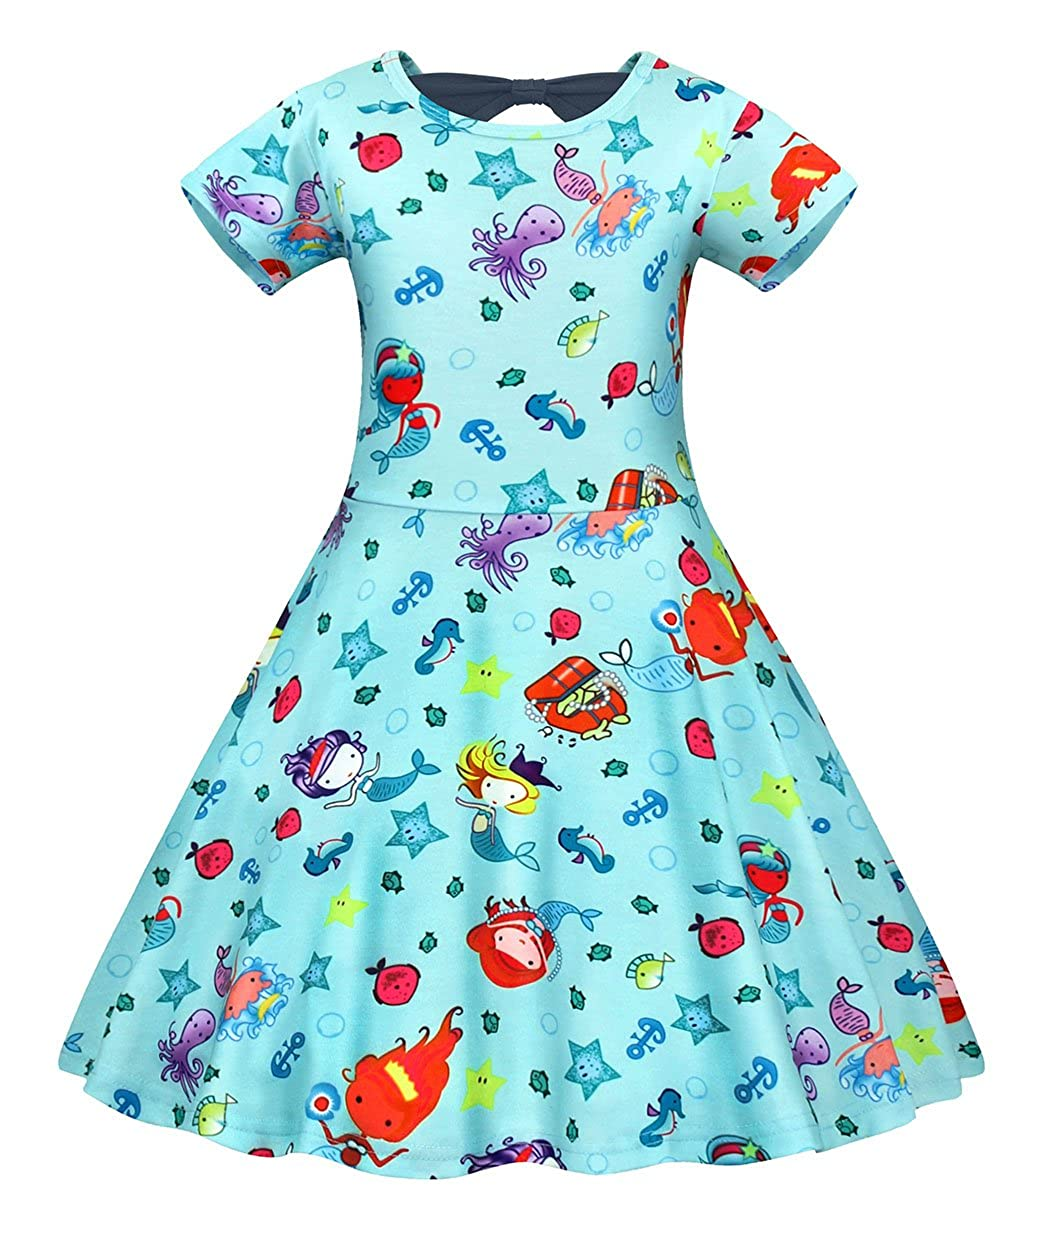 Filare Girls Little Mermaid Dress Kids Cosplay Halloween Cartoon Outfit Playwear Clothes 1-7 Years